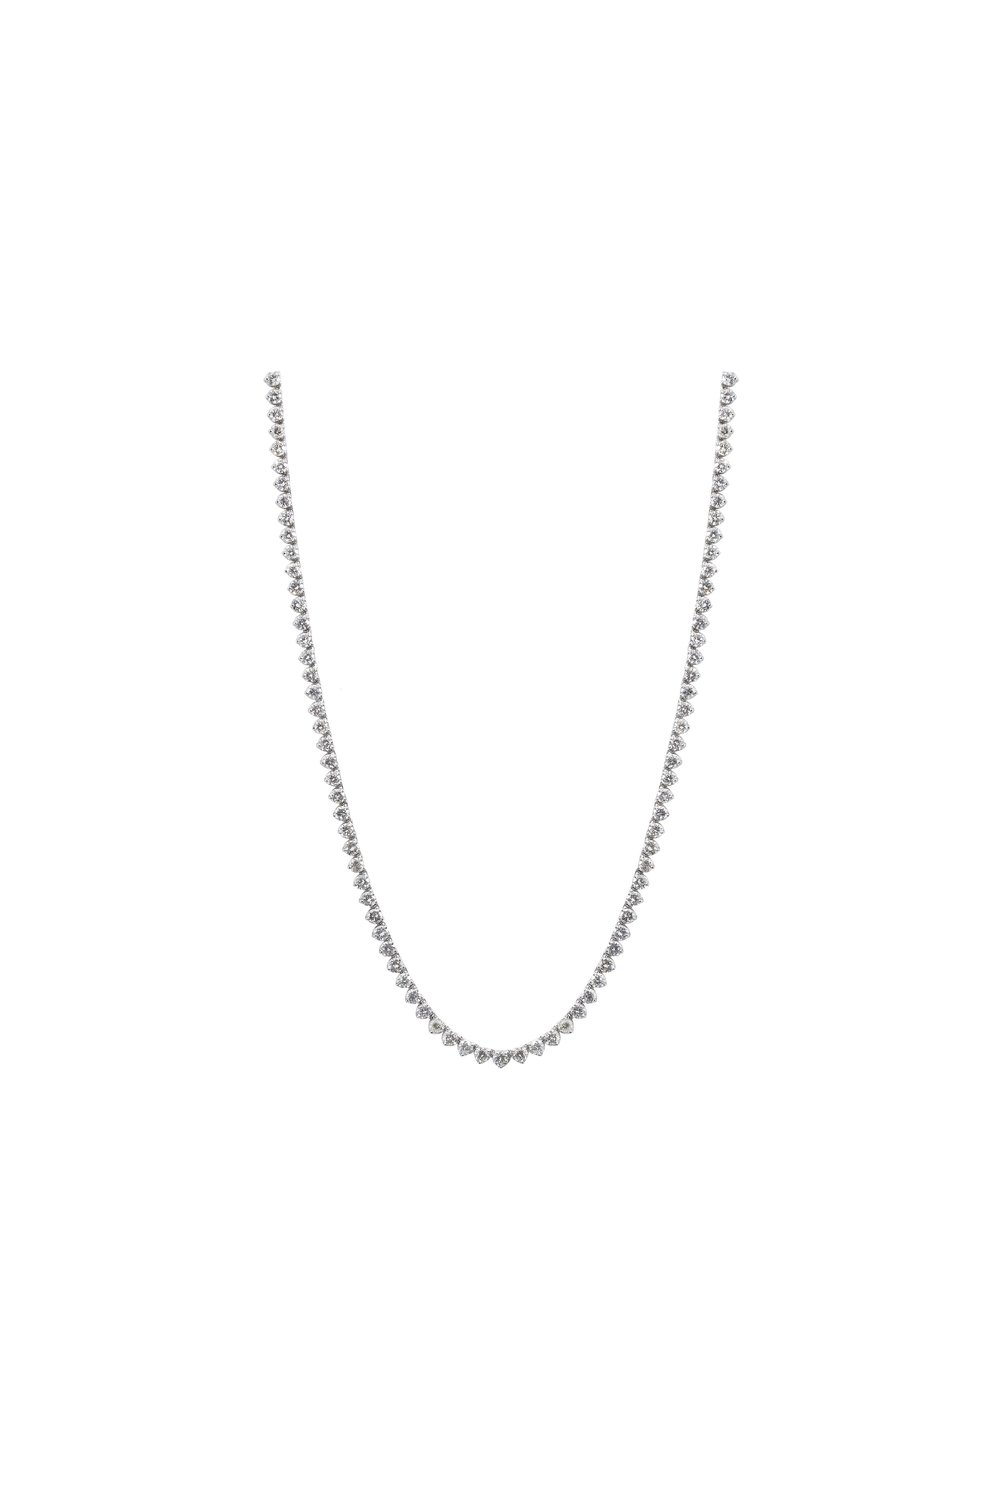 product necklace total gold karat of weight tennis white carat diamonds with